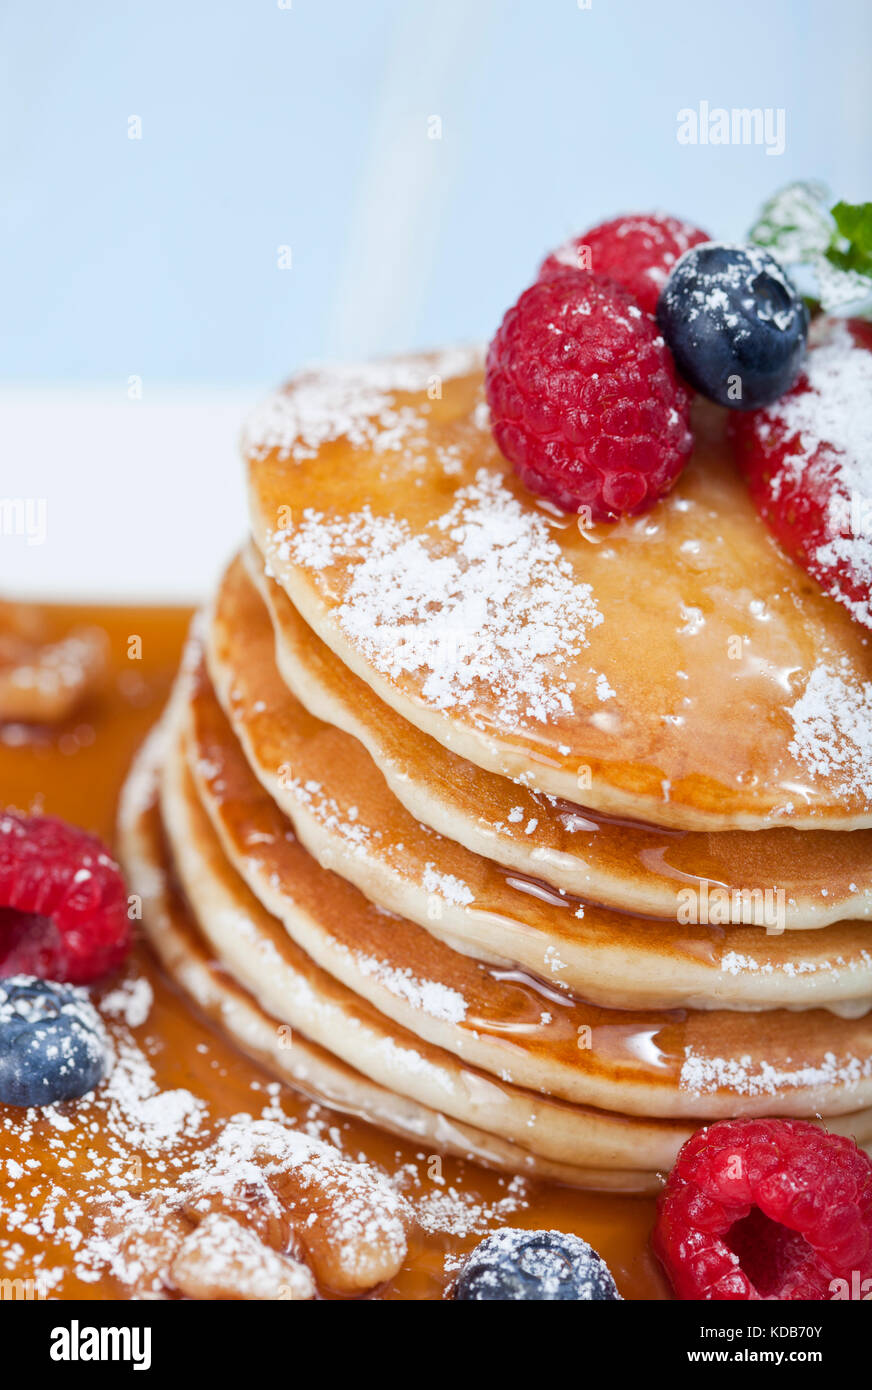 Stack of pancakes with mixed berries and maple syrup - Stock Image